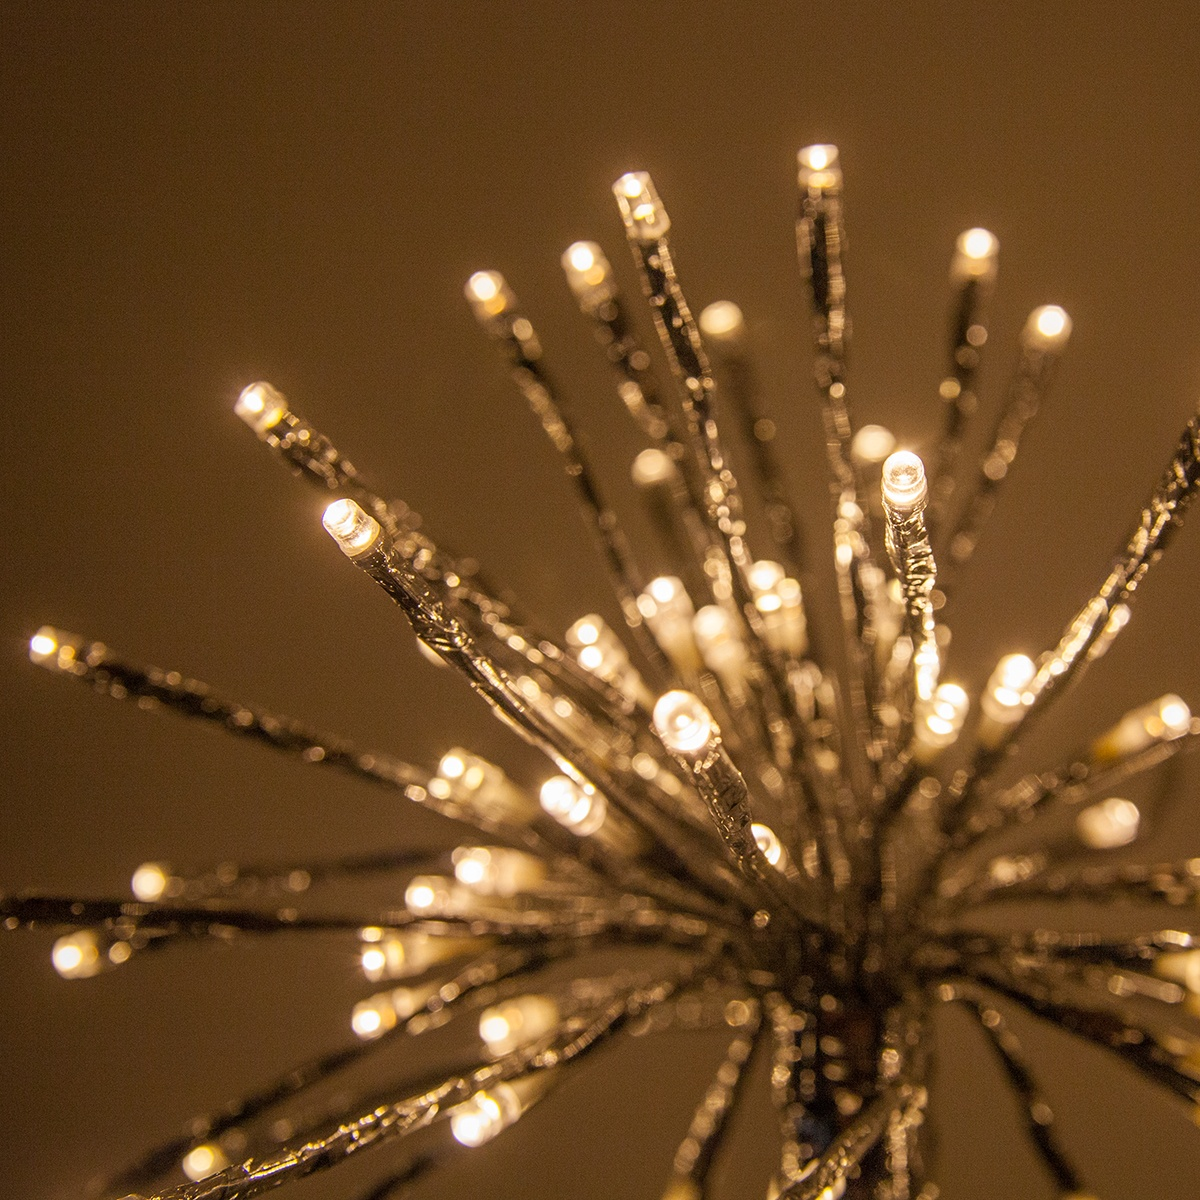 Starburst Lighted Branches with Warm White LED Lights, 3 pc